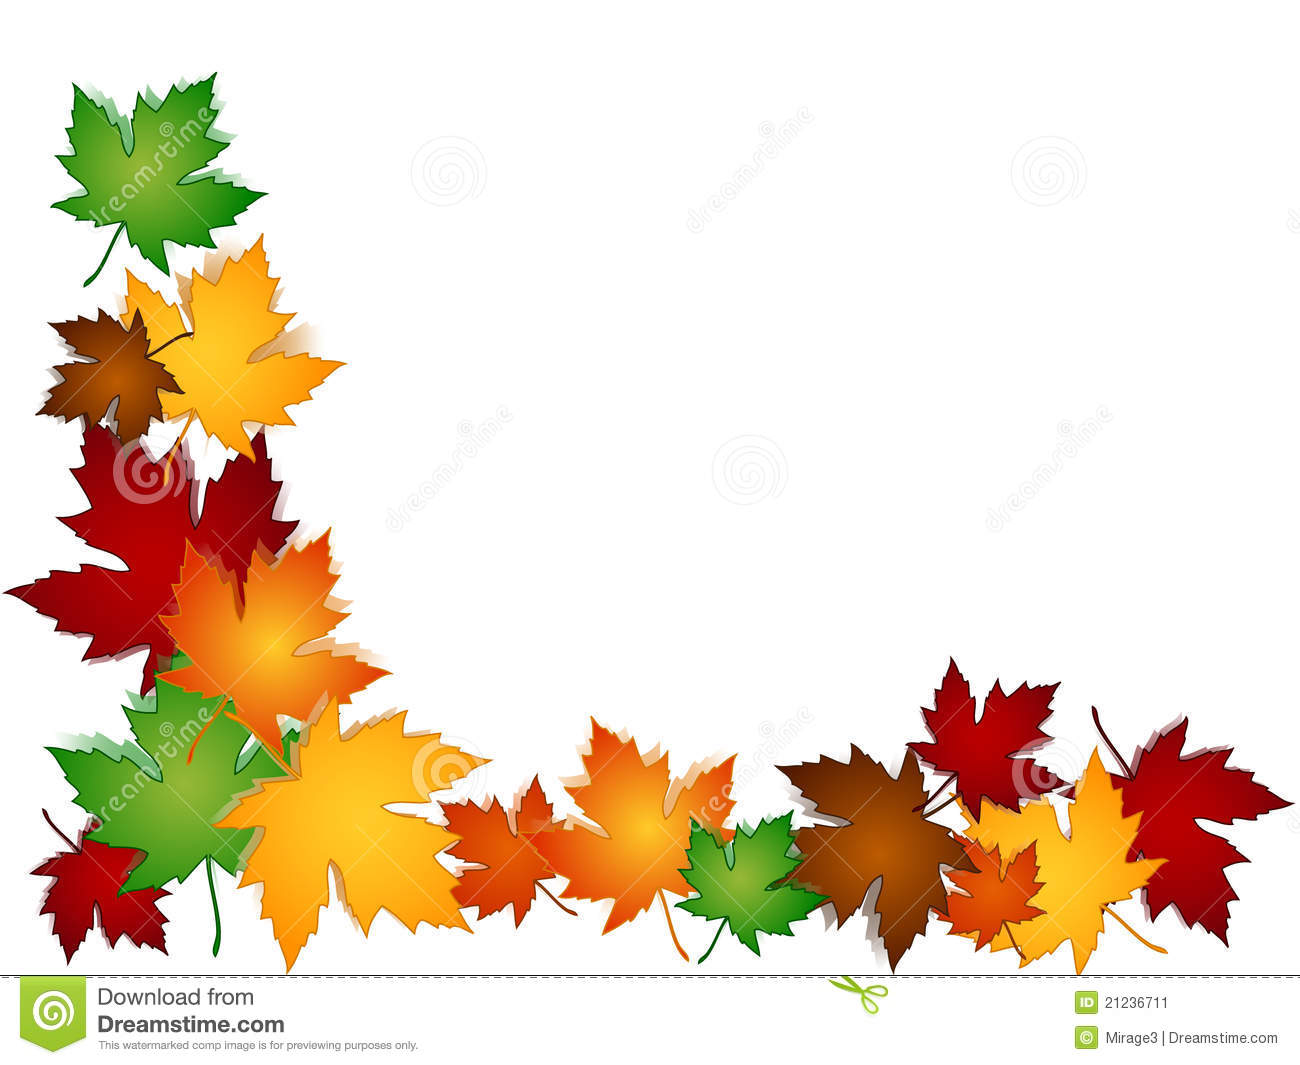 Autumn leaves clipart border royalty free Autumn Leaves Borders | Free download best Autumn Leaves Borders on ... royalty free